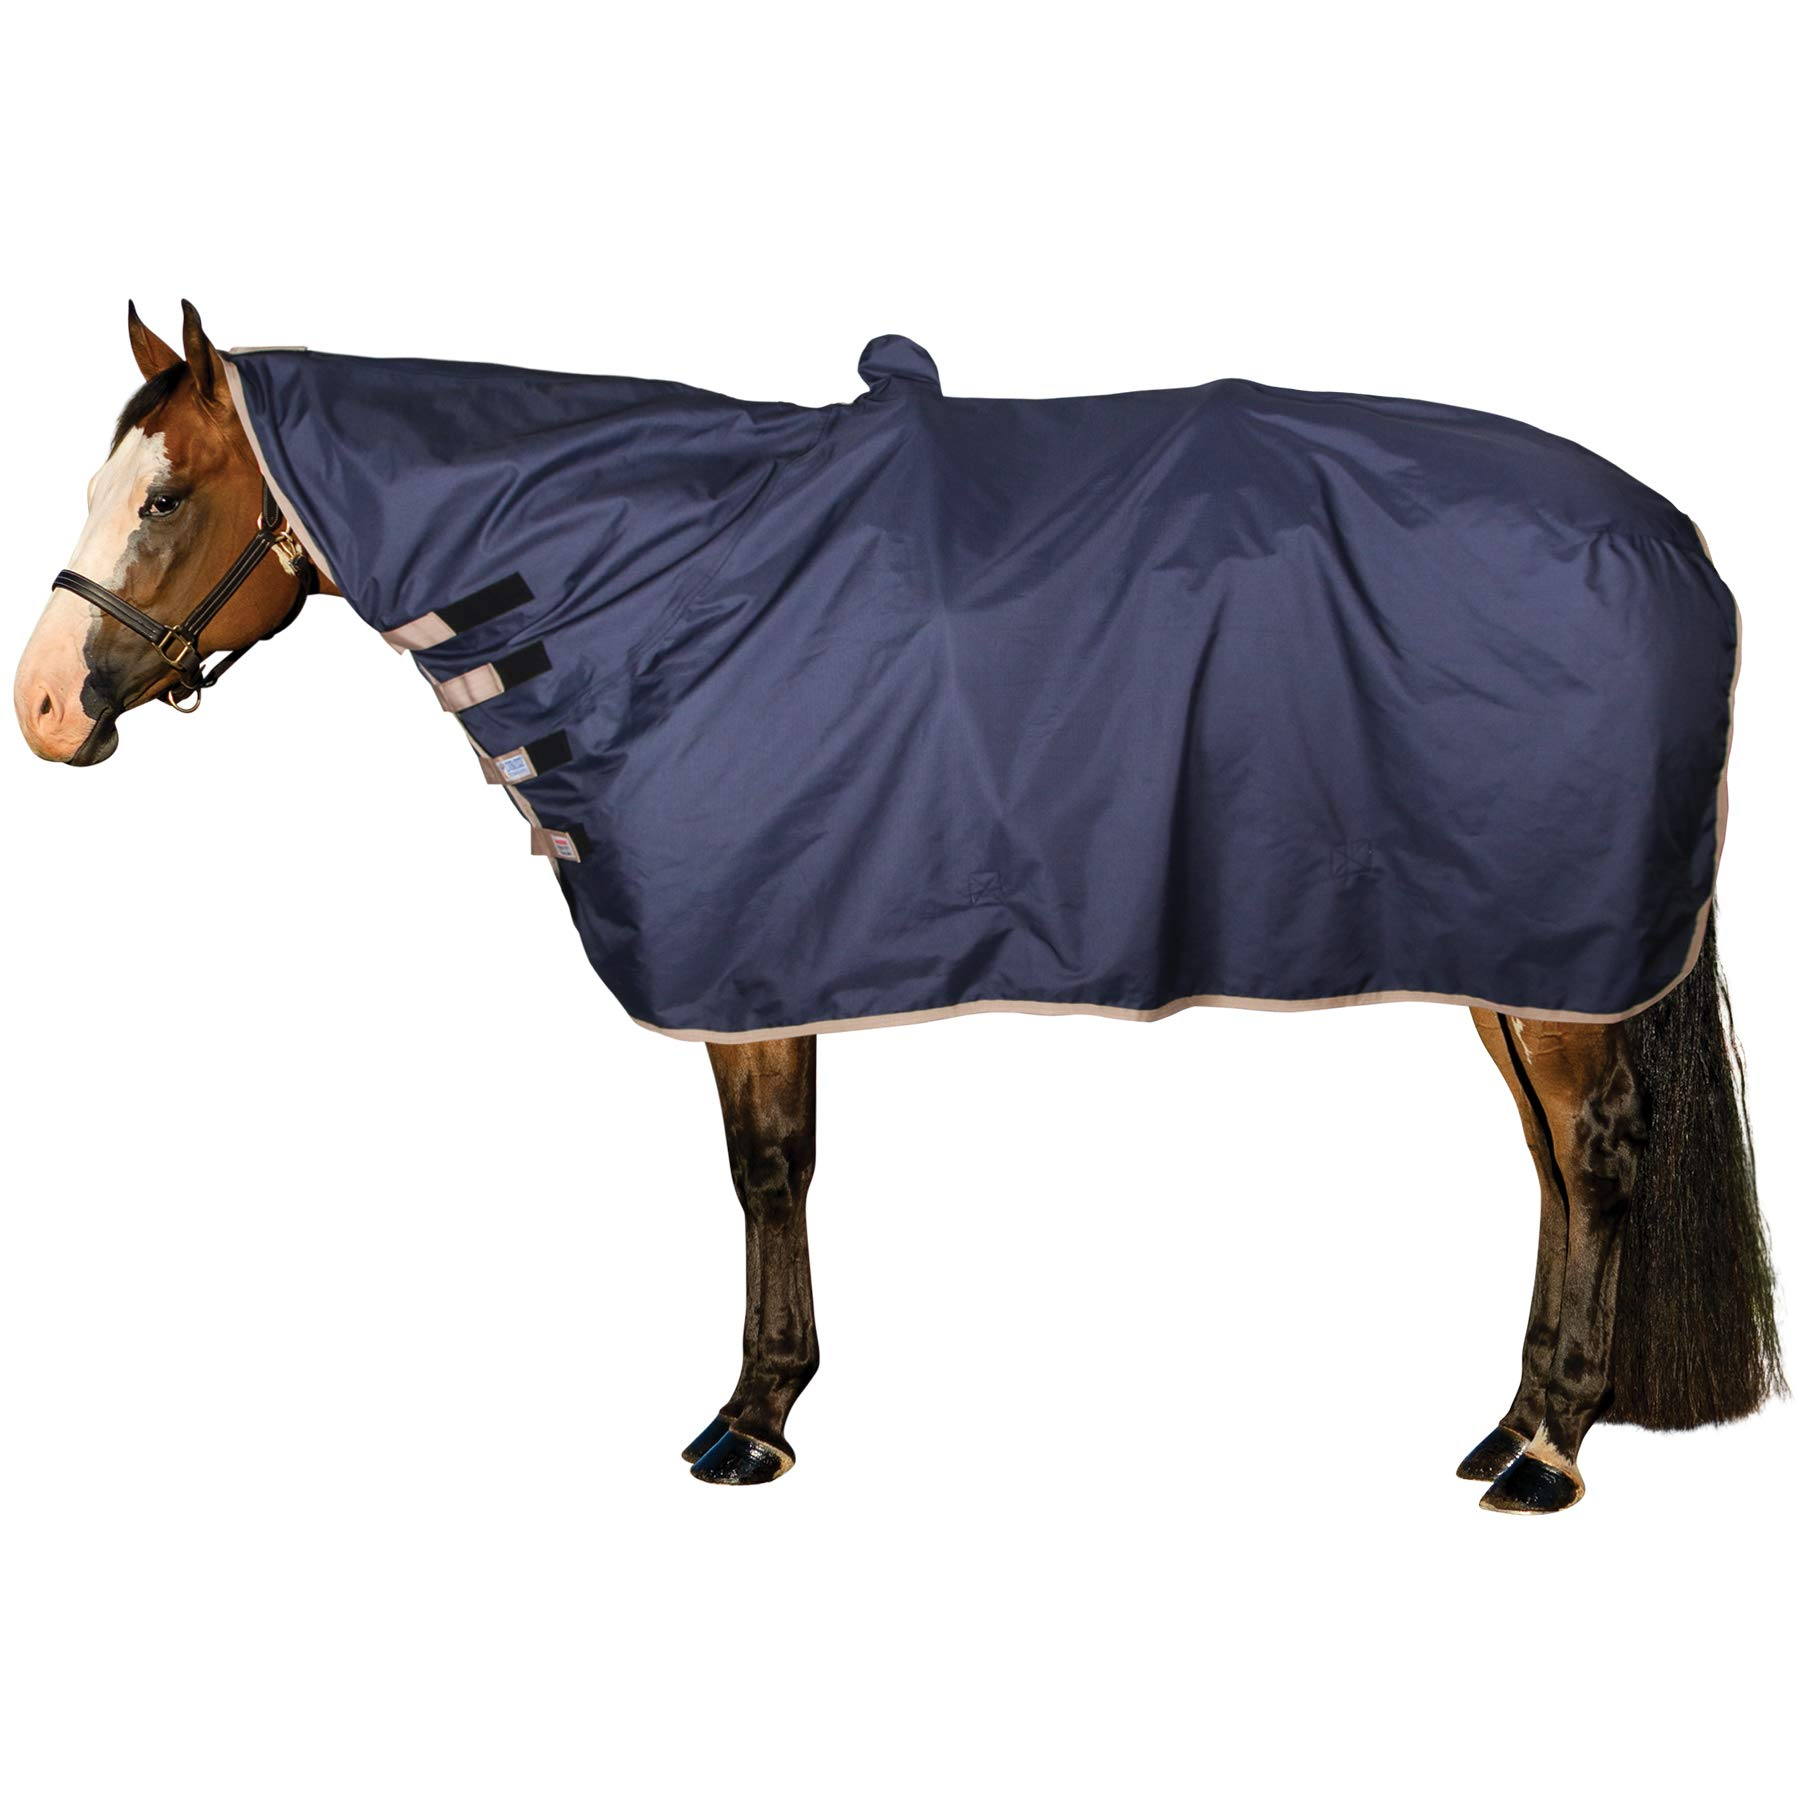 Schneiders Saddlery Dura-Tech Waterproof Contour Horse Show Cover Rain Sheet (Large, Navy)